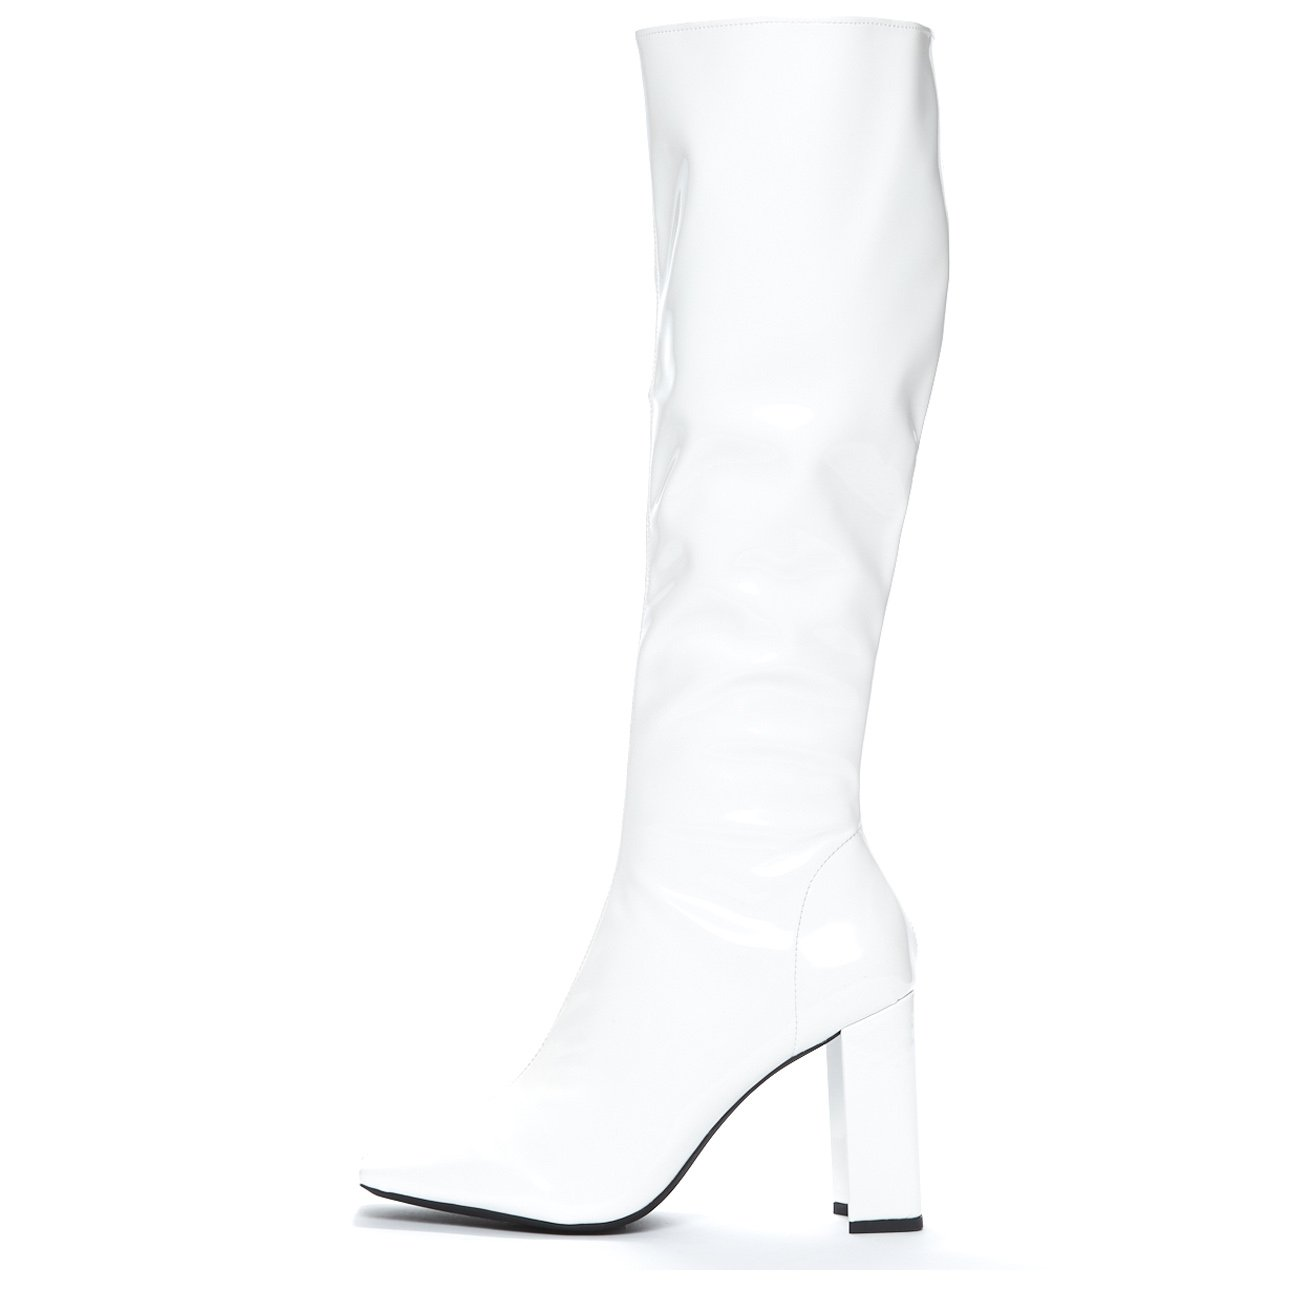 Jeffrey Campbell 'Nemesis MD', white knee hi boot, 6.5